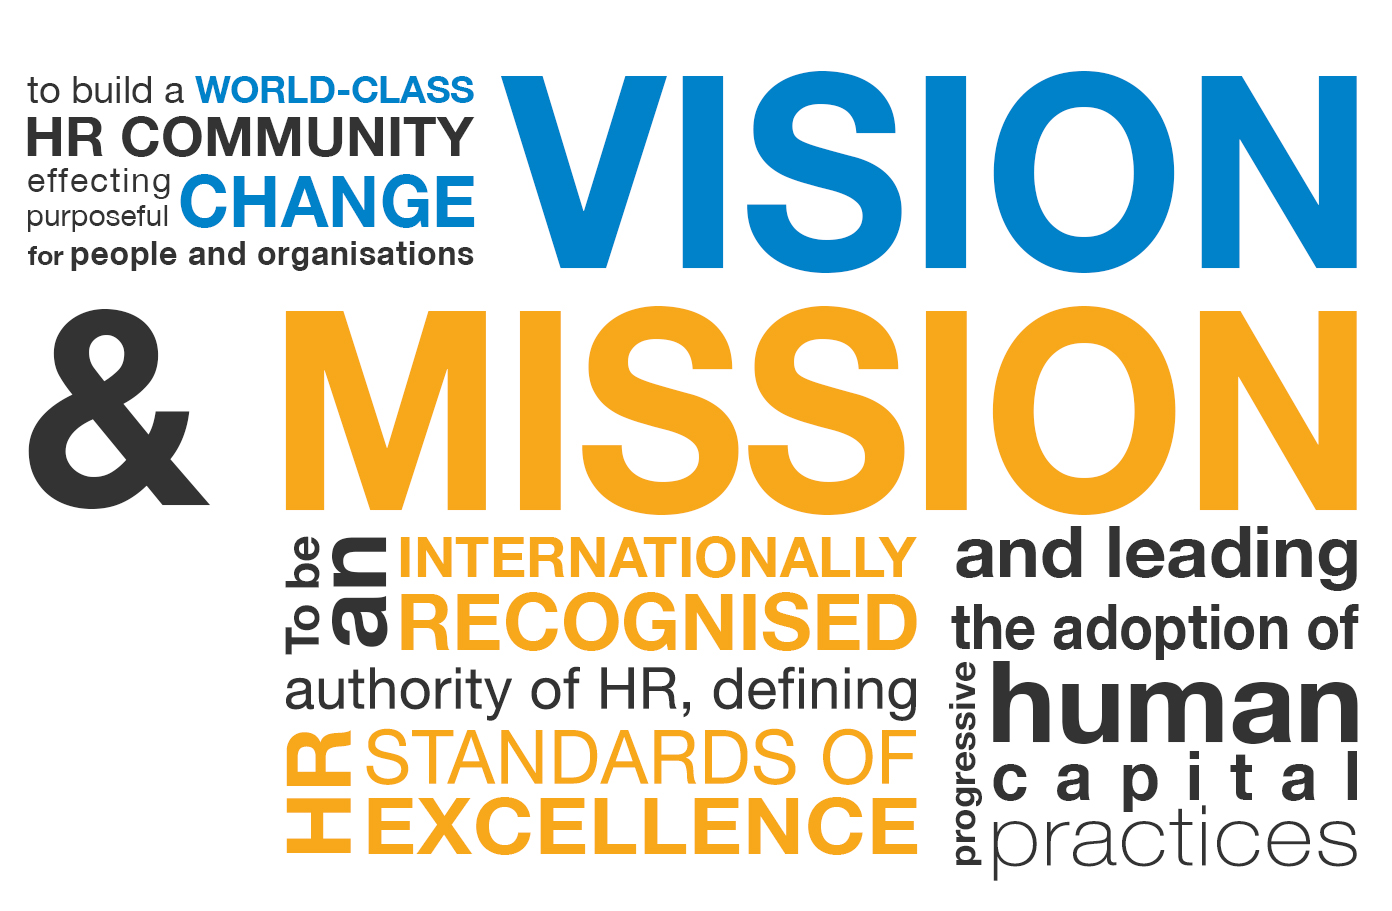 Institute of Human Resources Professional Singapore tyopgrahy design Vision and Mission